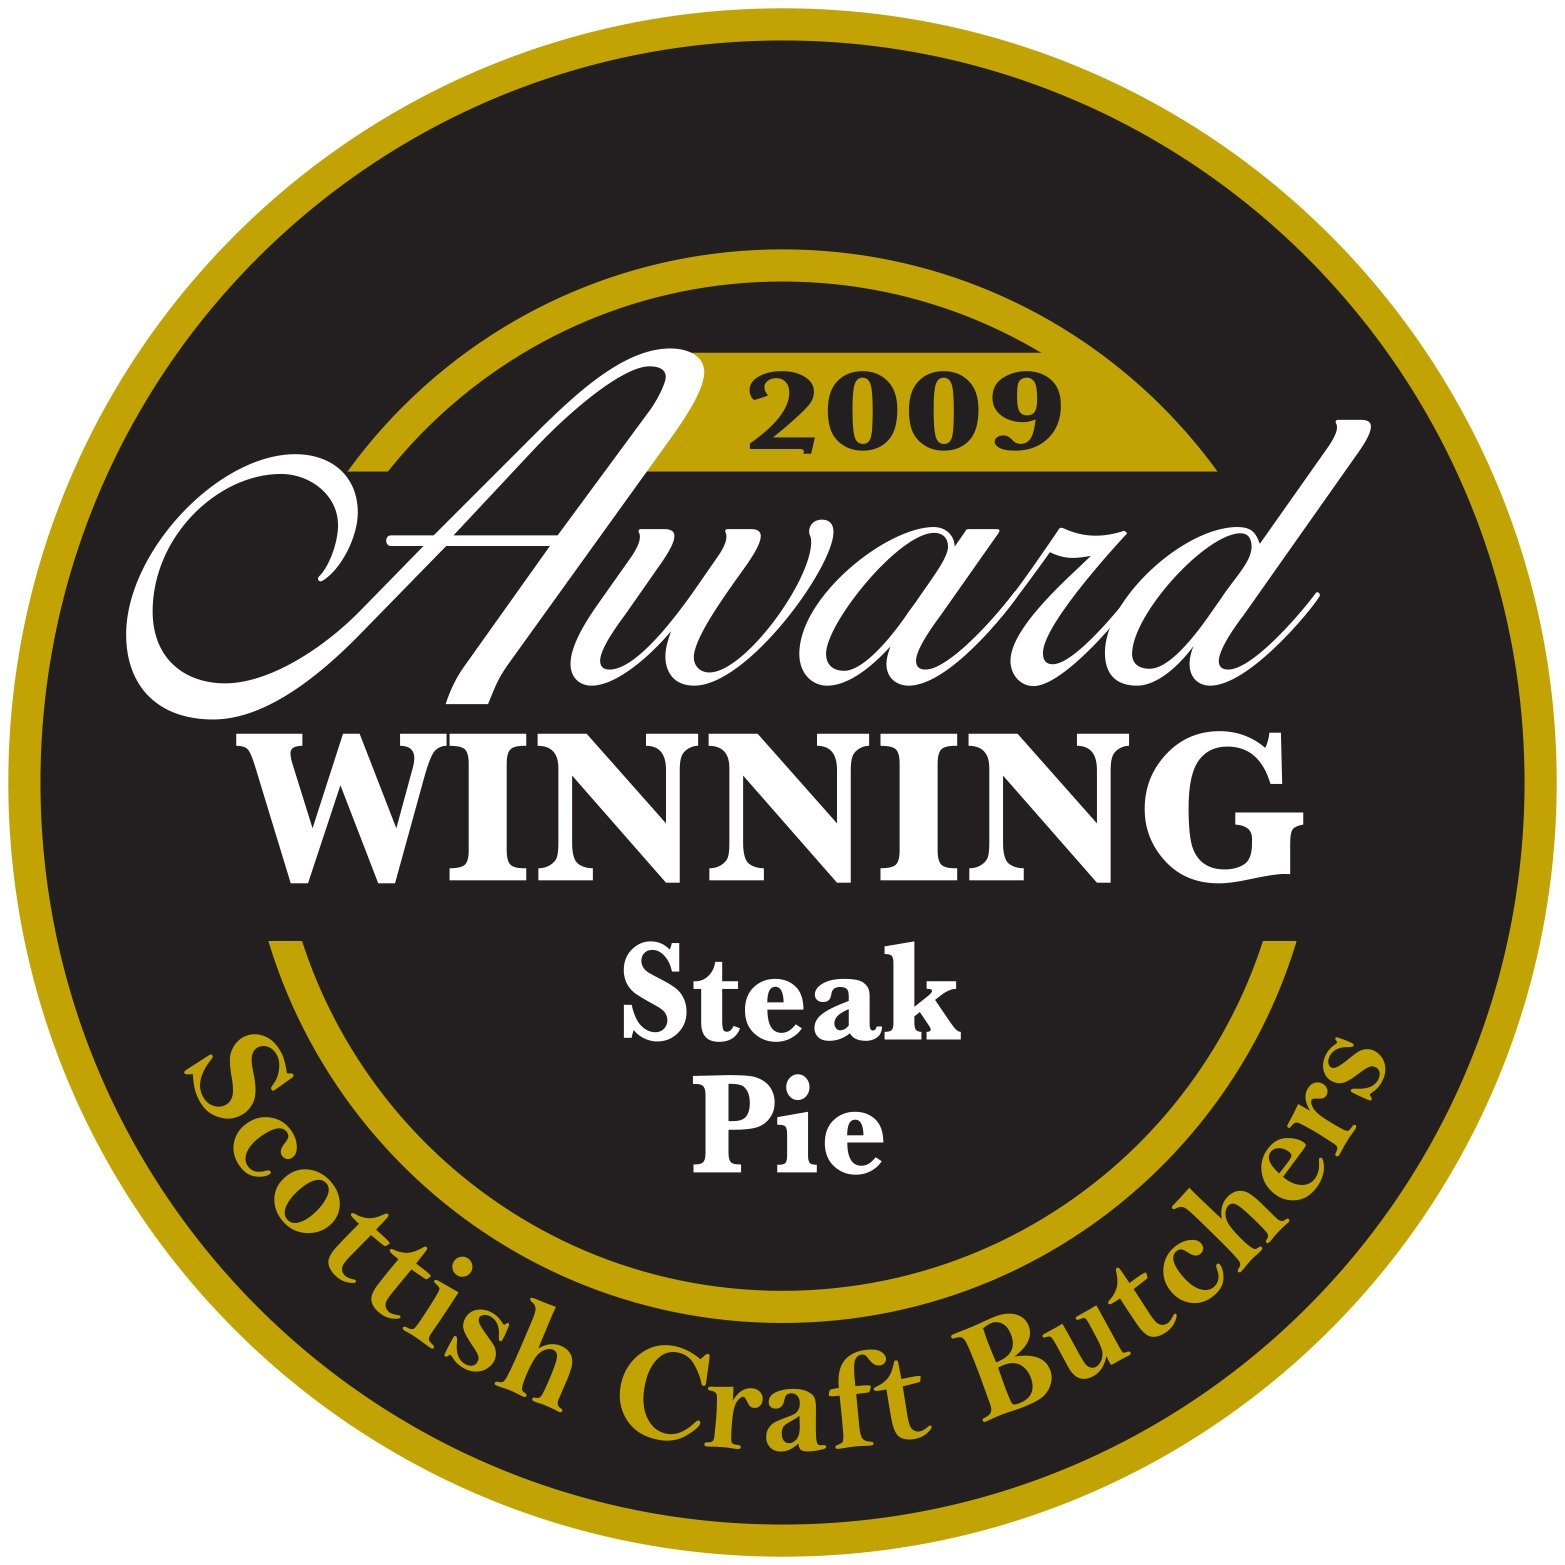 2009 award for steak pie